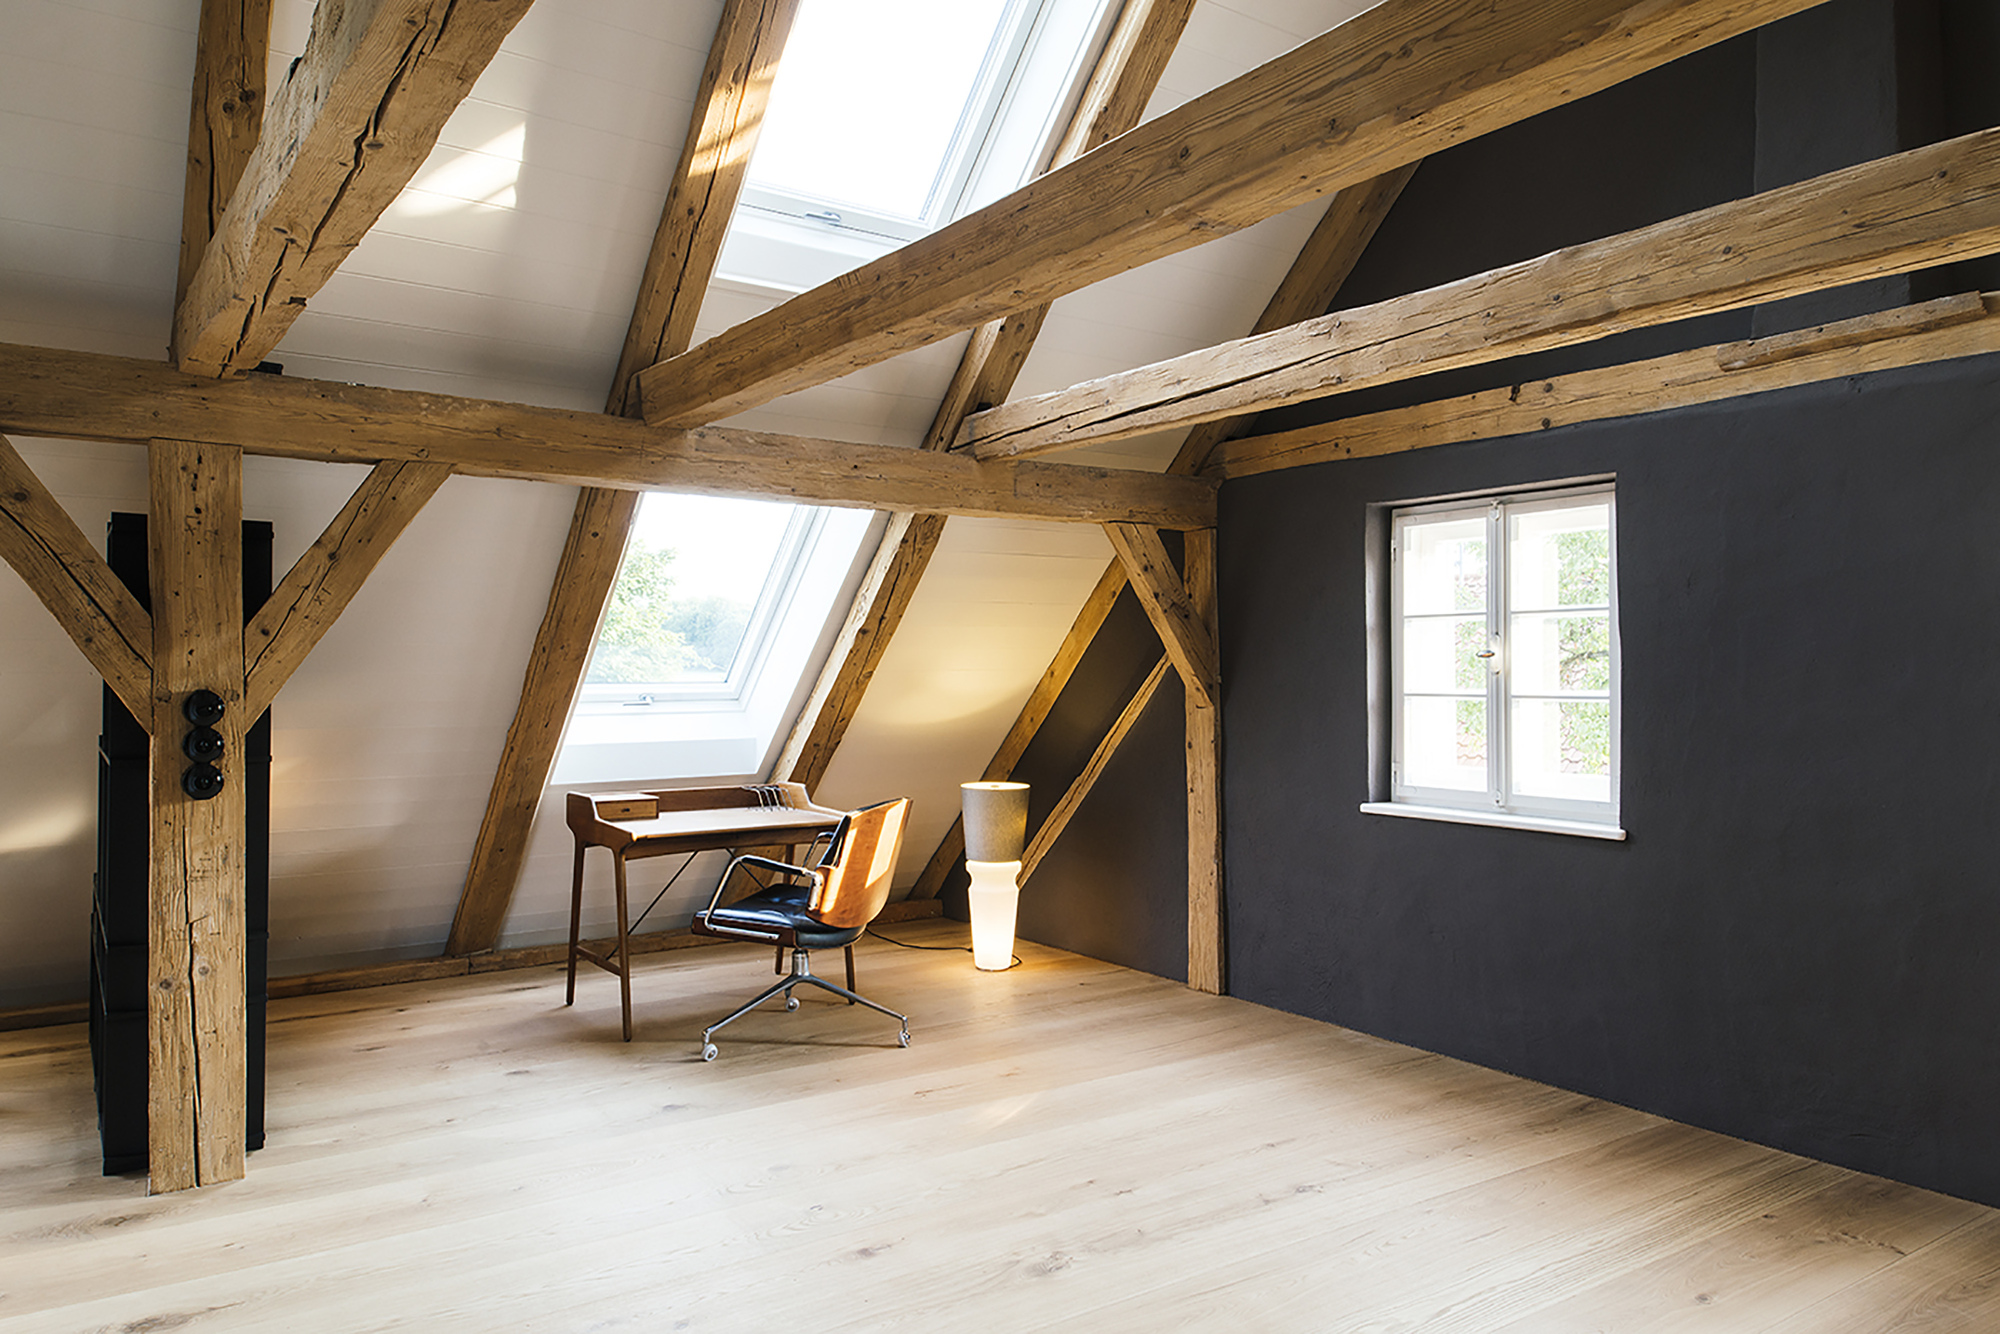 12_farmhouse-renovation-buero-philipp-moeller__